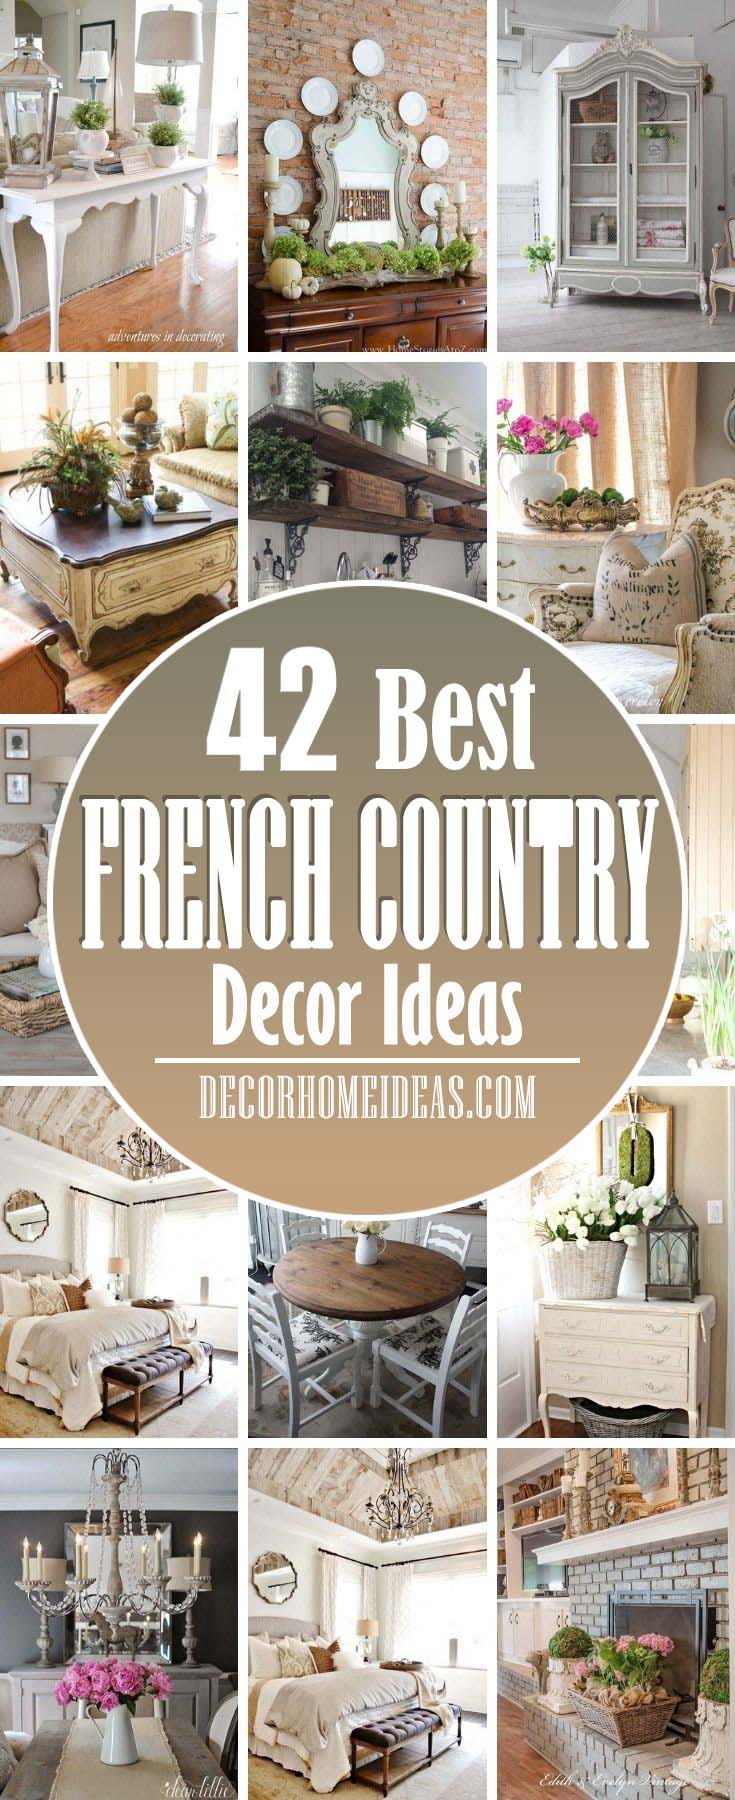 Best French Country Decor Ideas. Get inspired by these 40+ examples of French country décor and fill your rooms with muted colors, toile fabrics, tapestries, and more—all with a rustic touch.  #decorhomeideas